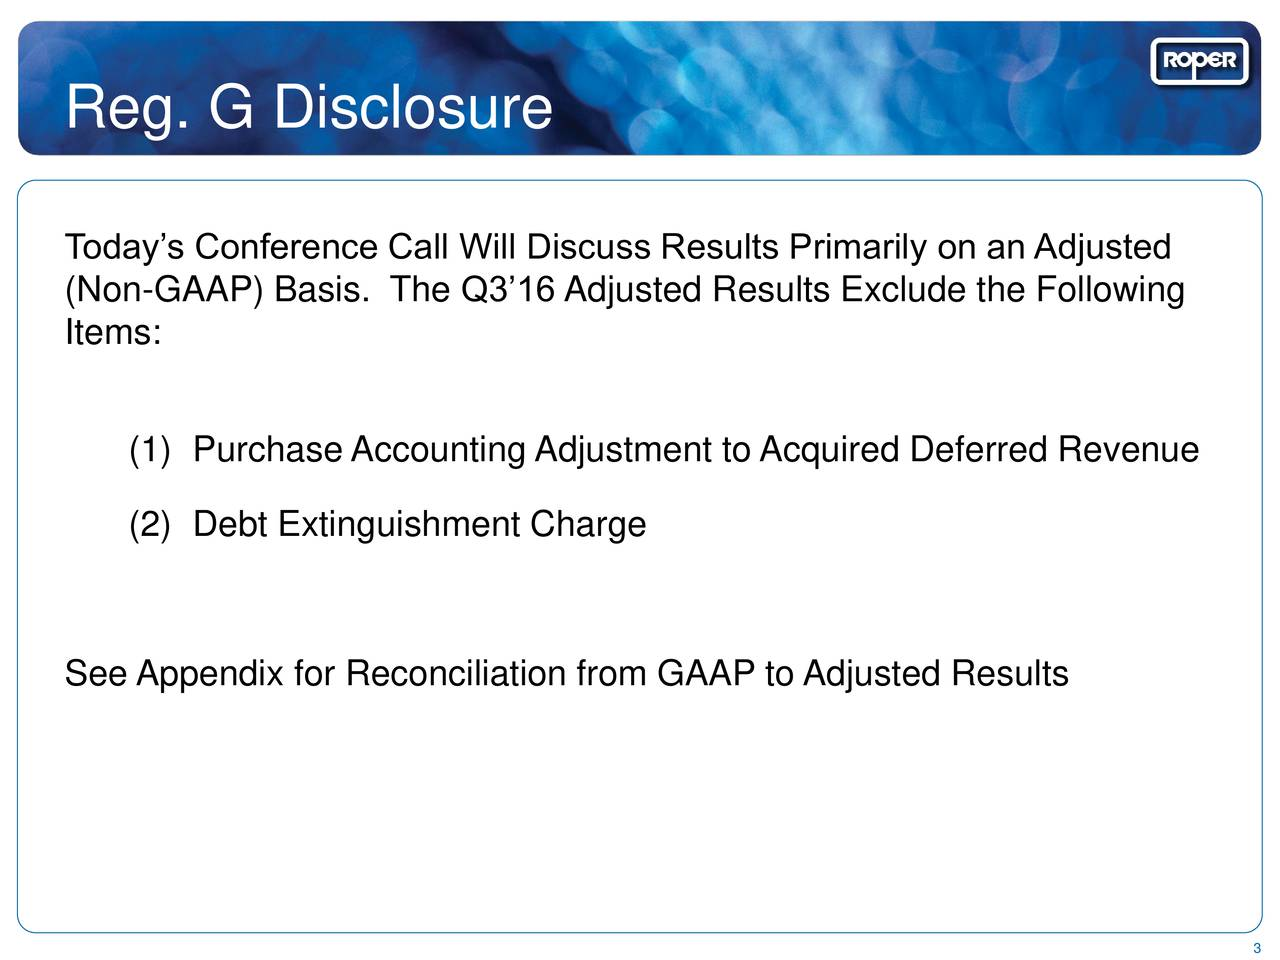 Todays Conference Call Will Discuss Results Primarily on an Adjusted (Non-GAAP) Basis. The Q316 Adjusted Results Exclude the Following Items: A Diversified Growth Company (1) Purchase Accounting Adjustment to Acquired Deferred Revenue (2) Debt Extinguishment Chargeyle See Appendix for Reconciliation from GAAP to Adjusted Results